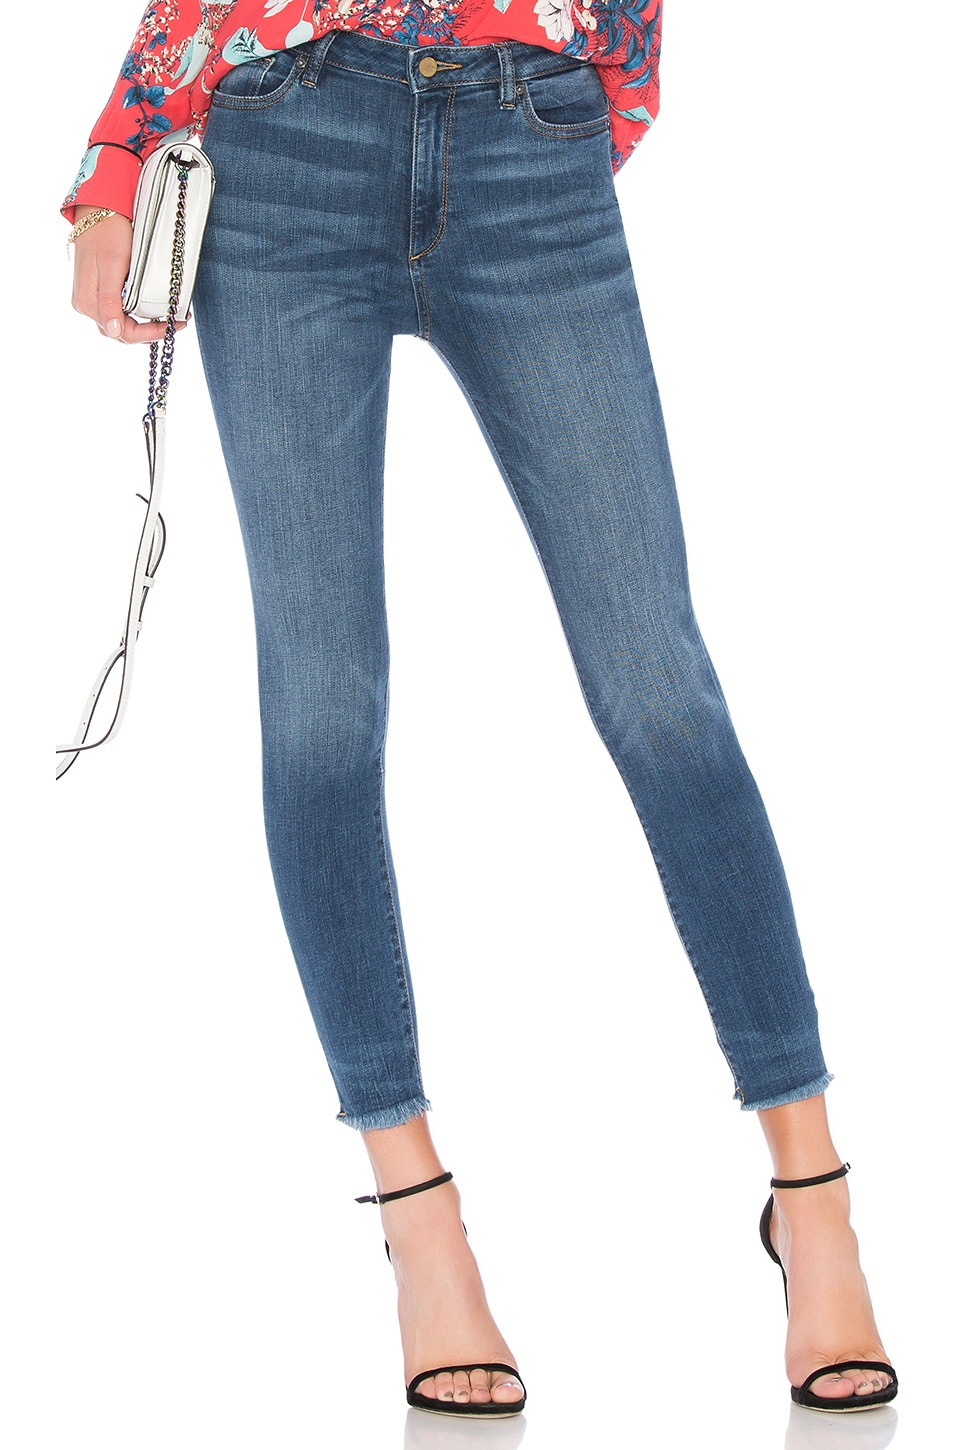 DL1961 CHRISSY TRIMTONE HIGH RISE SKINNY